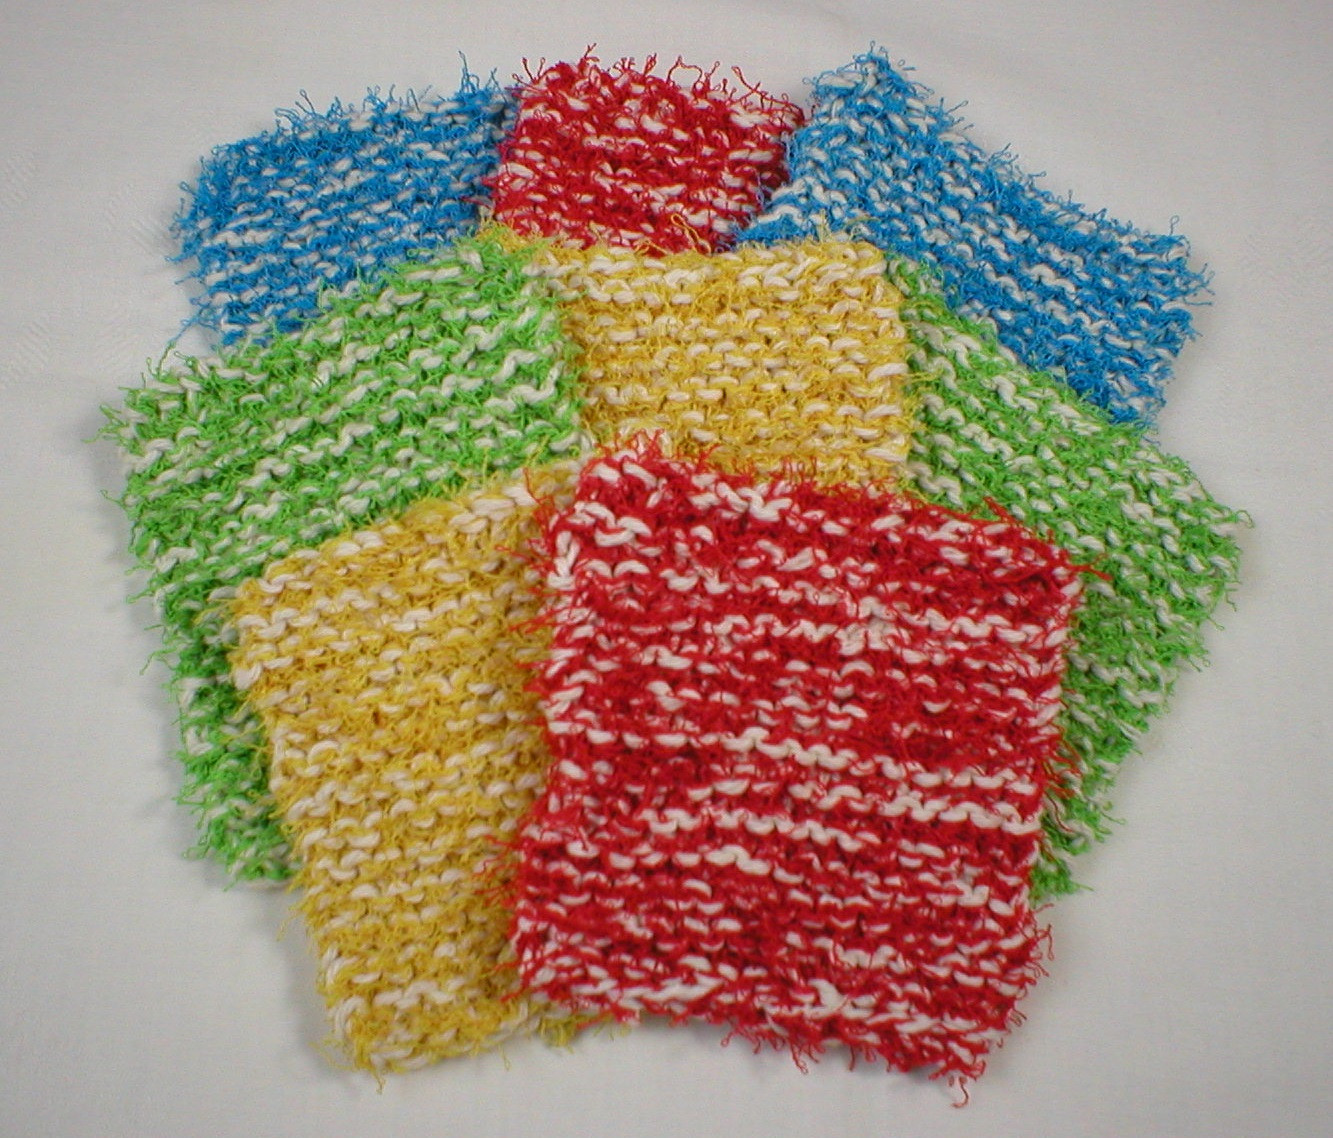 Review of Red Heart Scrubby Yarn